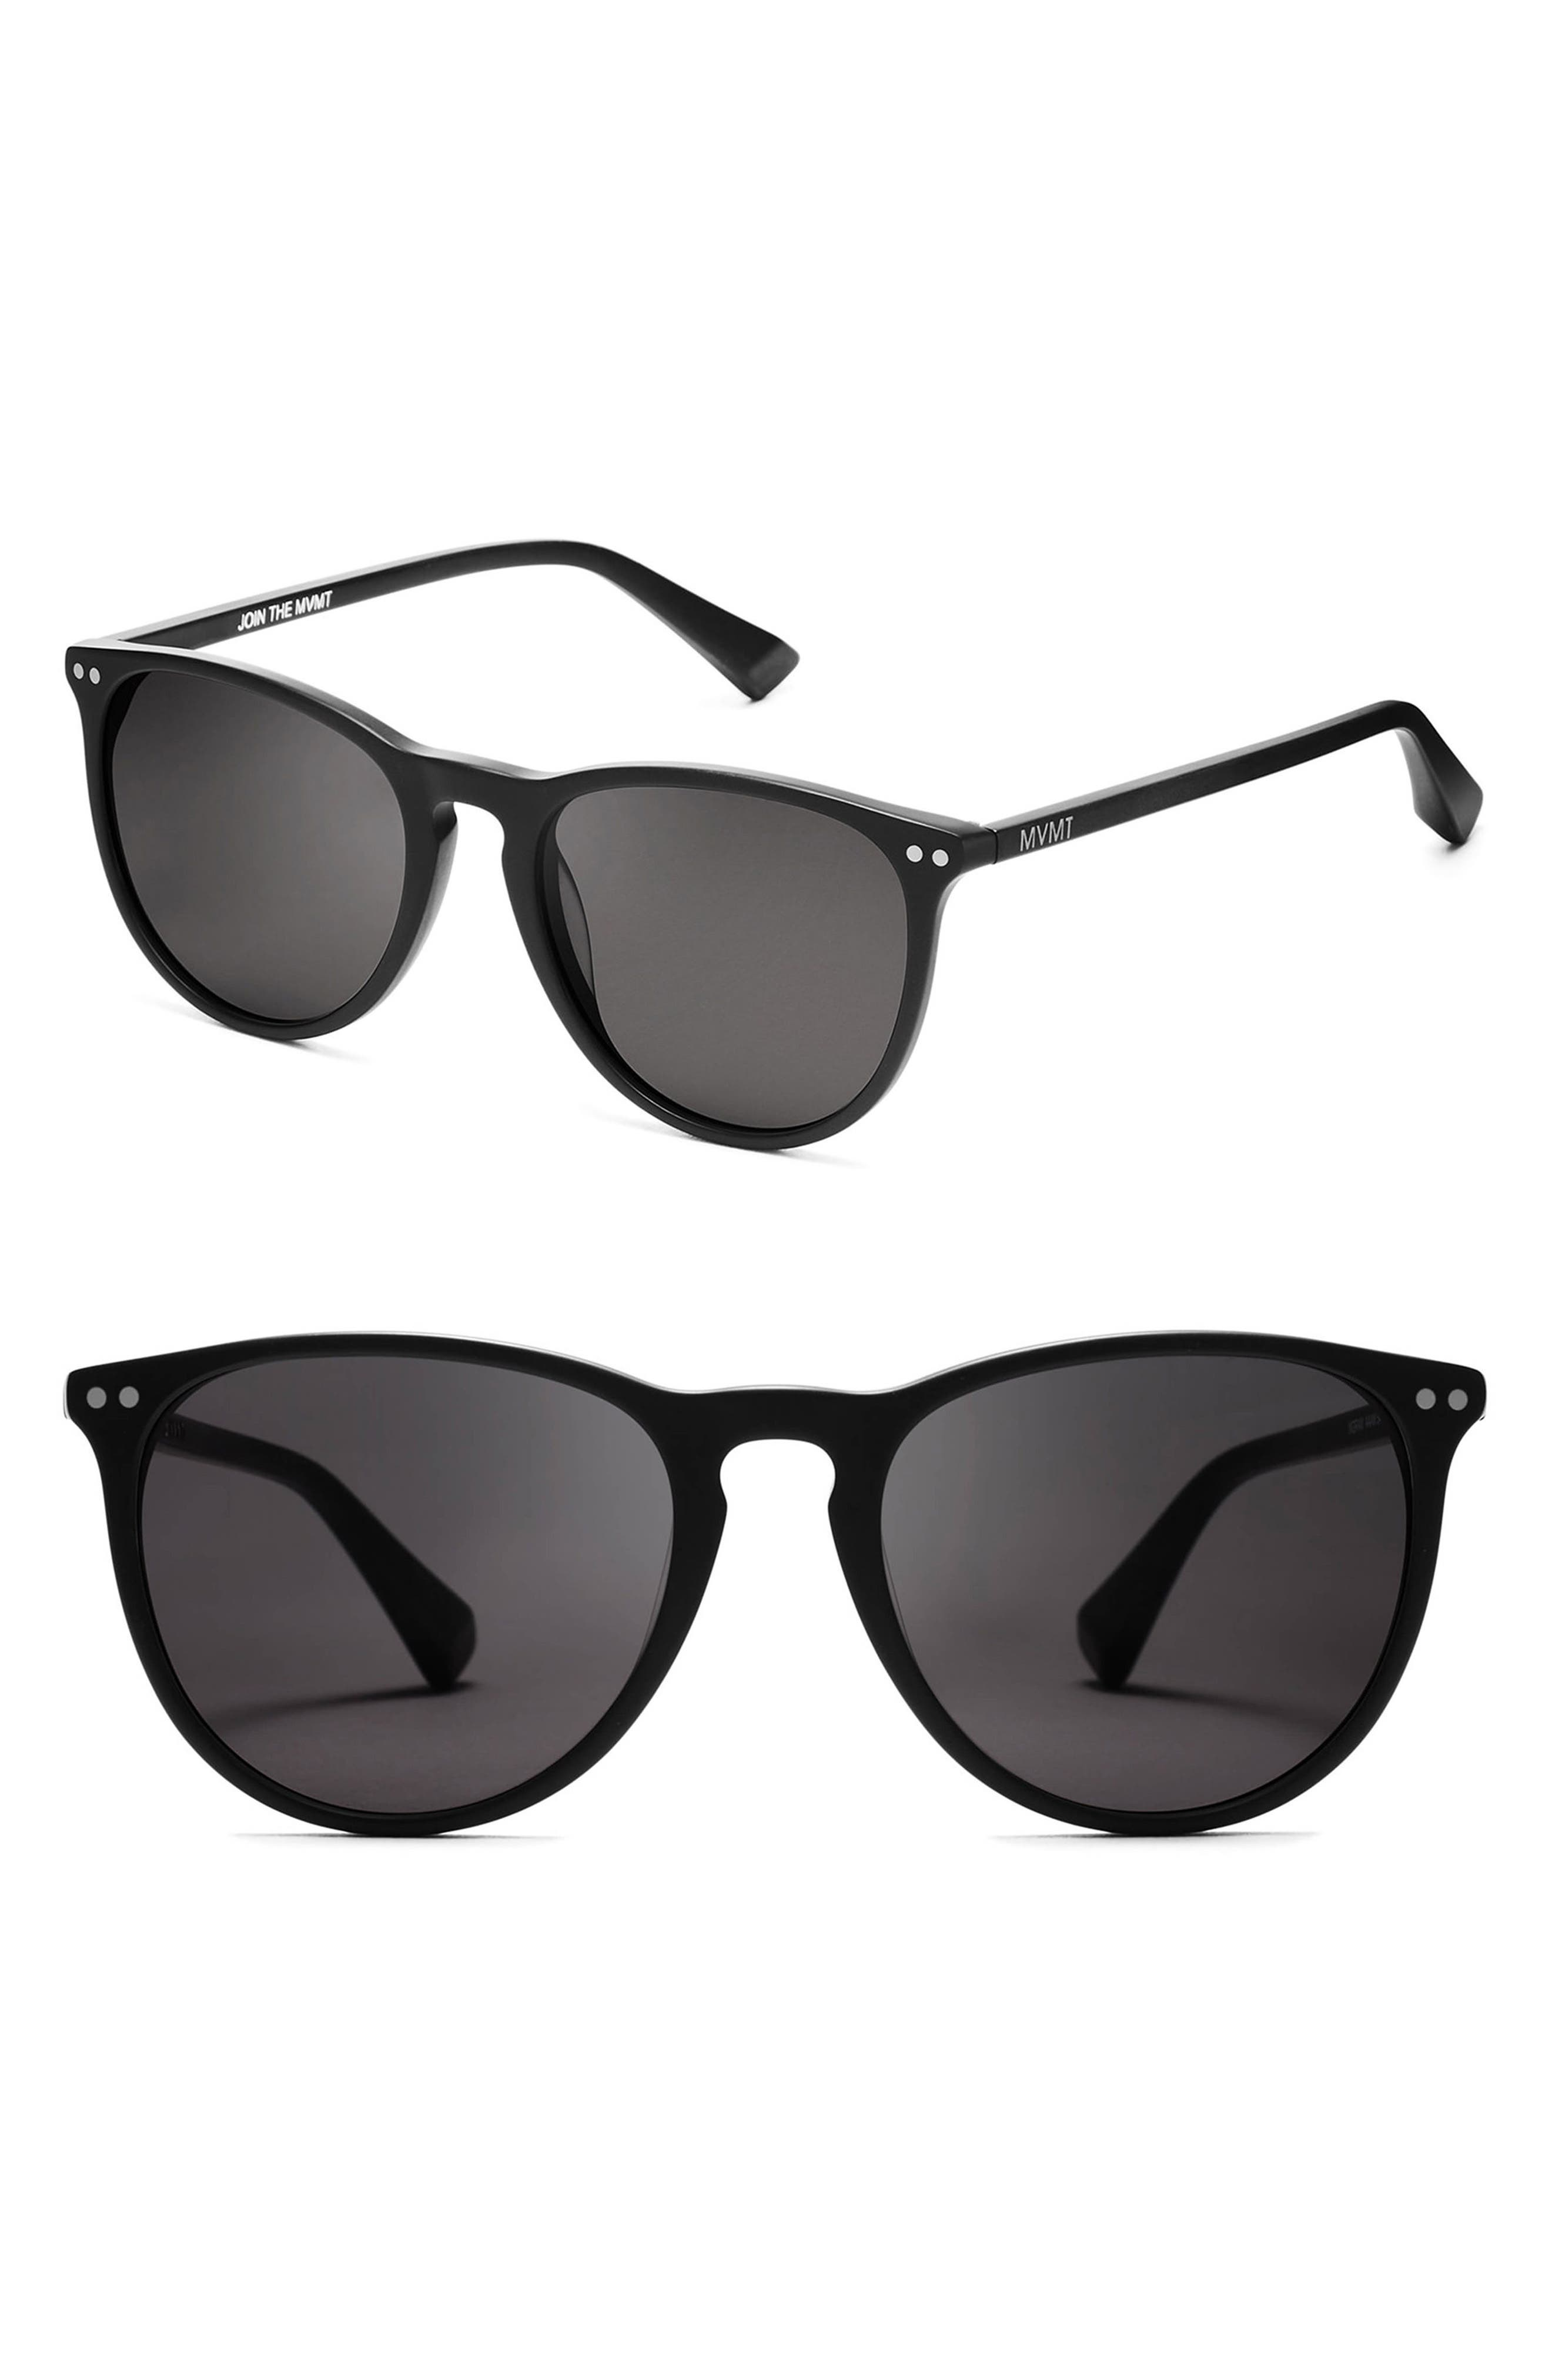 Ingram 54mm Sunglasses,                         Main,                         color, Matte Black